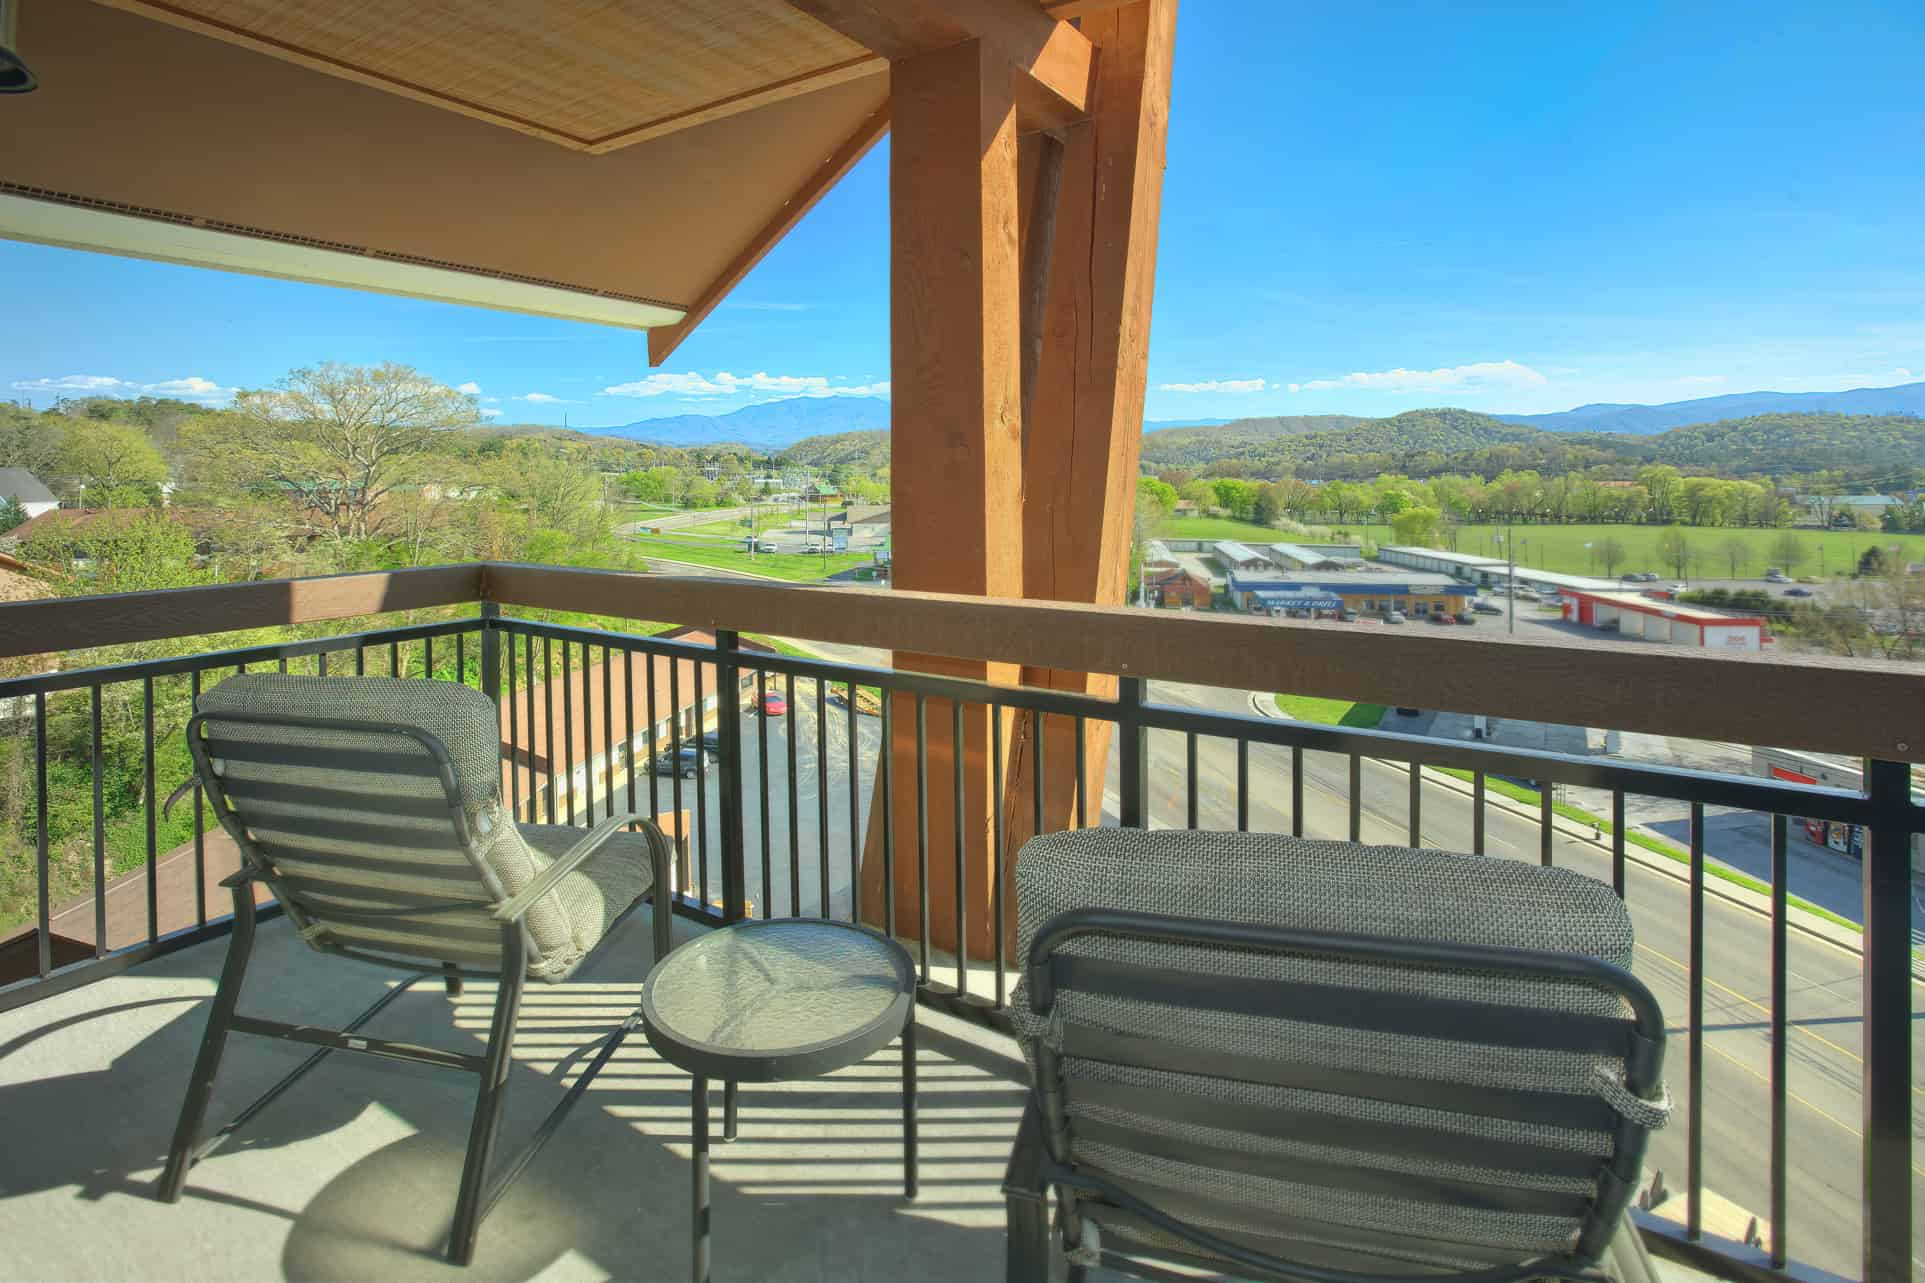 The balcony of a Pigeon Forge condo rental with beautiful views of Mt. LeConte